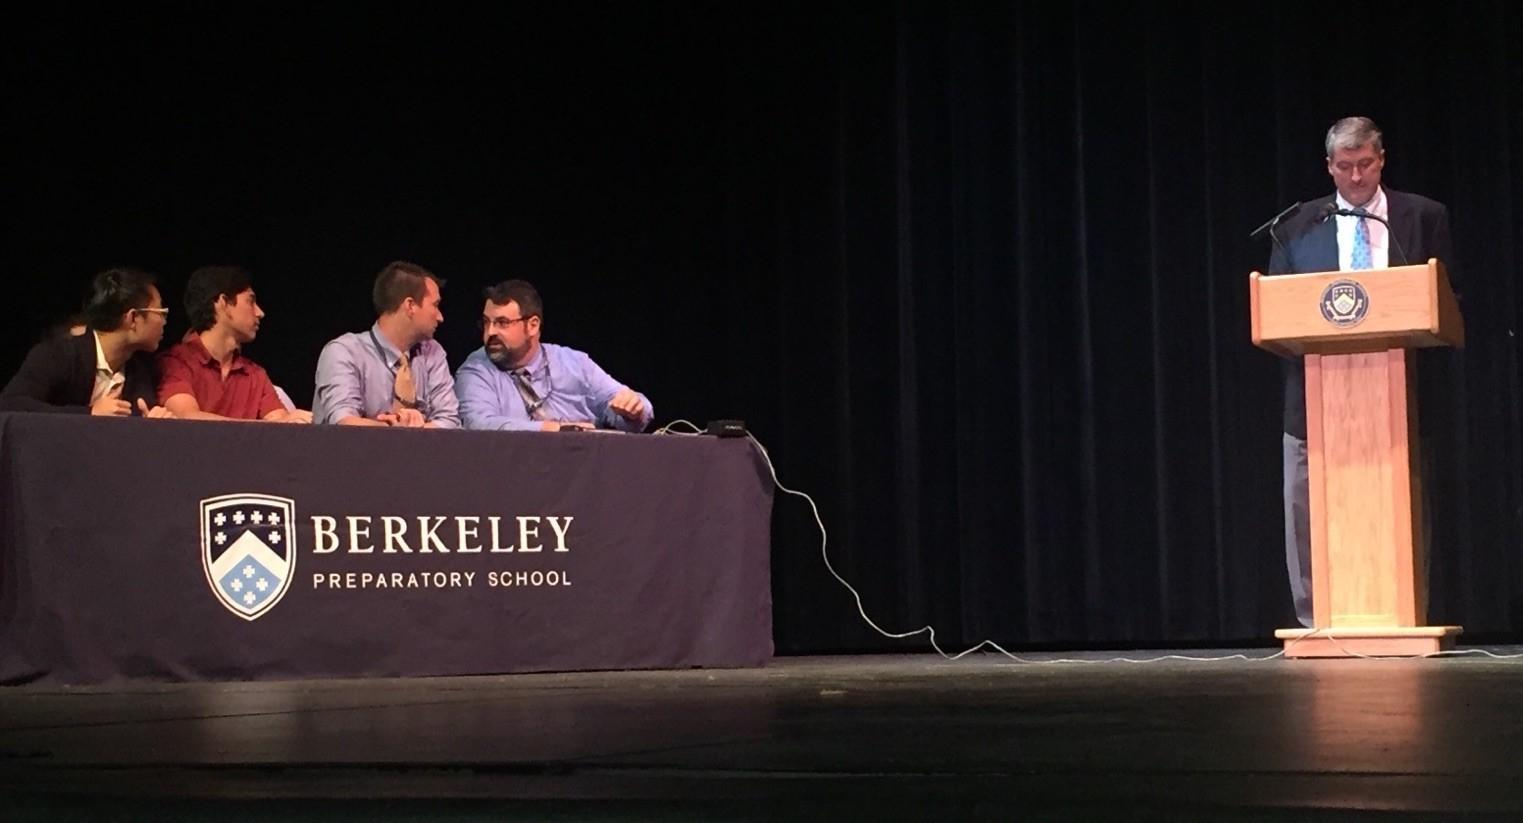 DYNAMIC DUO: Though the student competitors showed their trivia talent during Monday's tournament, all eyes were on the teachers as they fired answers across the stage. Mr. Smith and Mr. Jacobs conversed throughout the tournament, double checking and congratulating each other on answers.